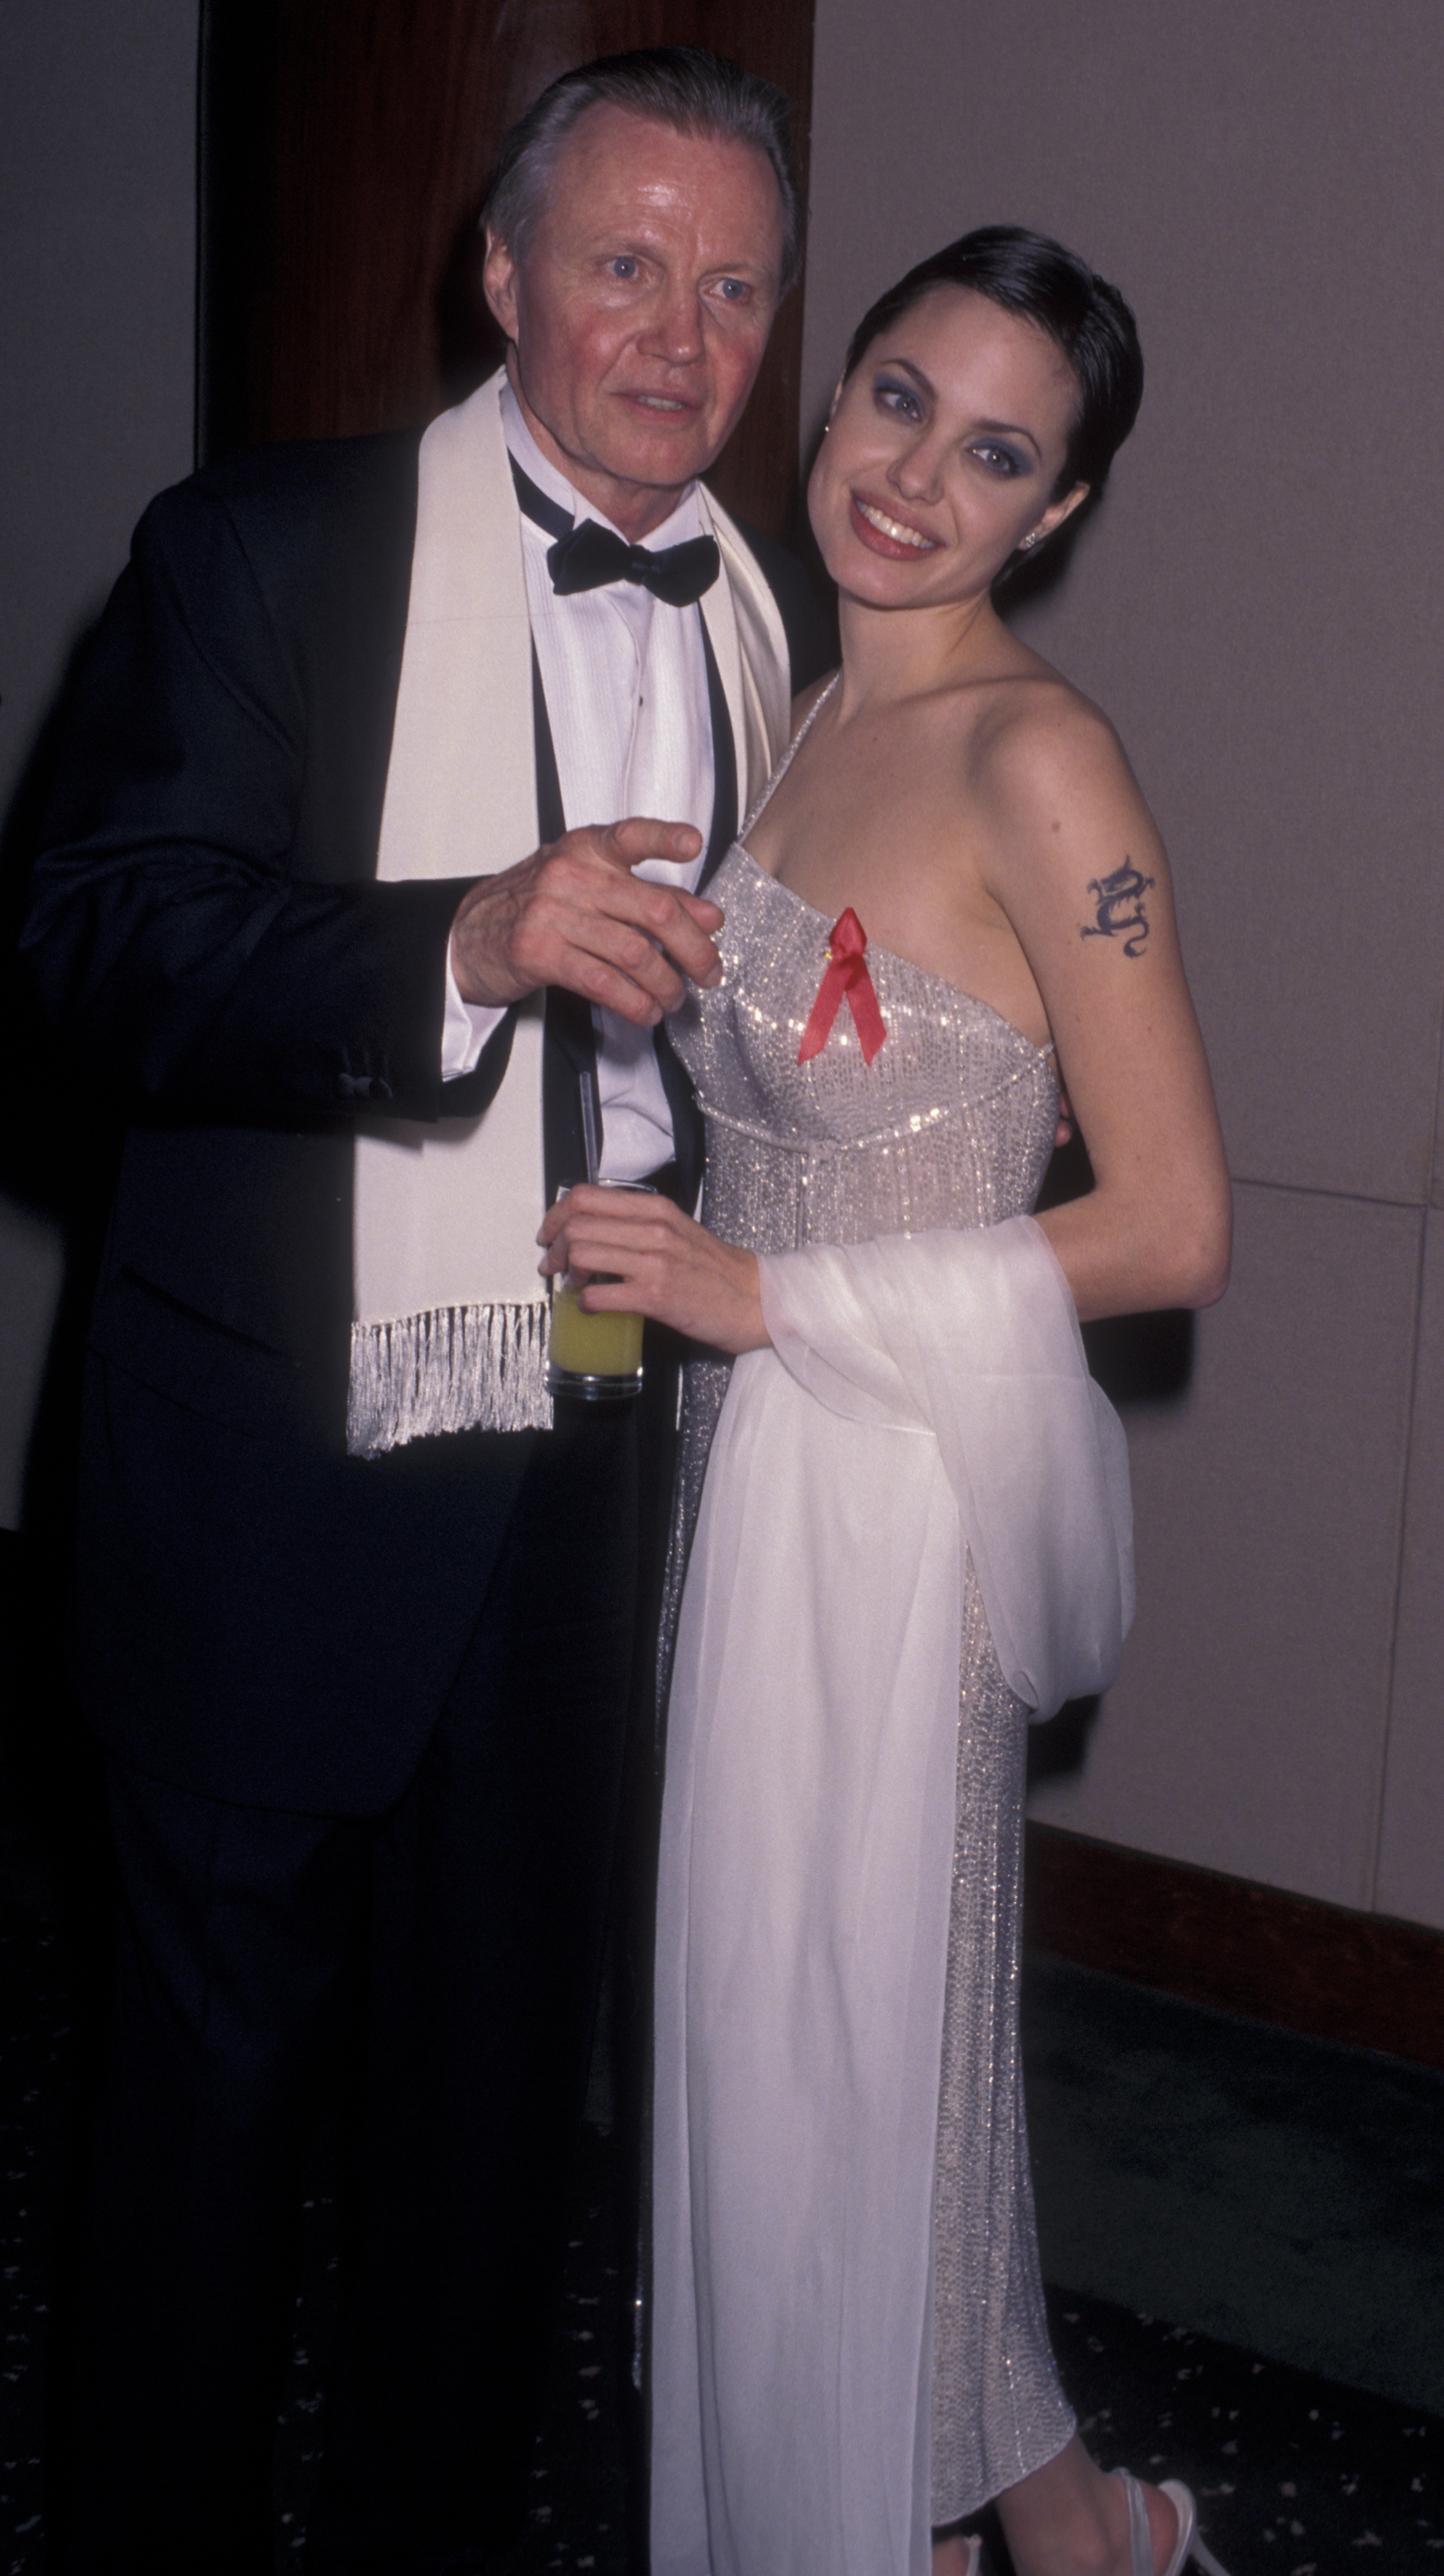 Jon Voight and Angelina Jolie attend 55th Annual Golden Globe Awards on January 18, 1998 at the Beverly Hilton Hotel in Beverly Hills, California. (Photo by Ron Galella, Ltd./Ron Galella Collection via Getty Images)